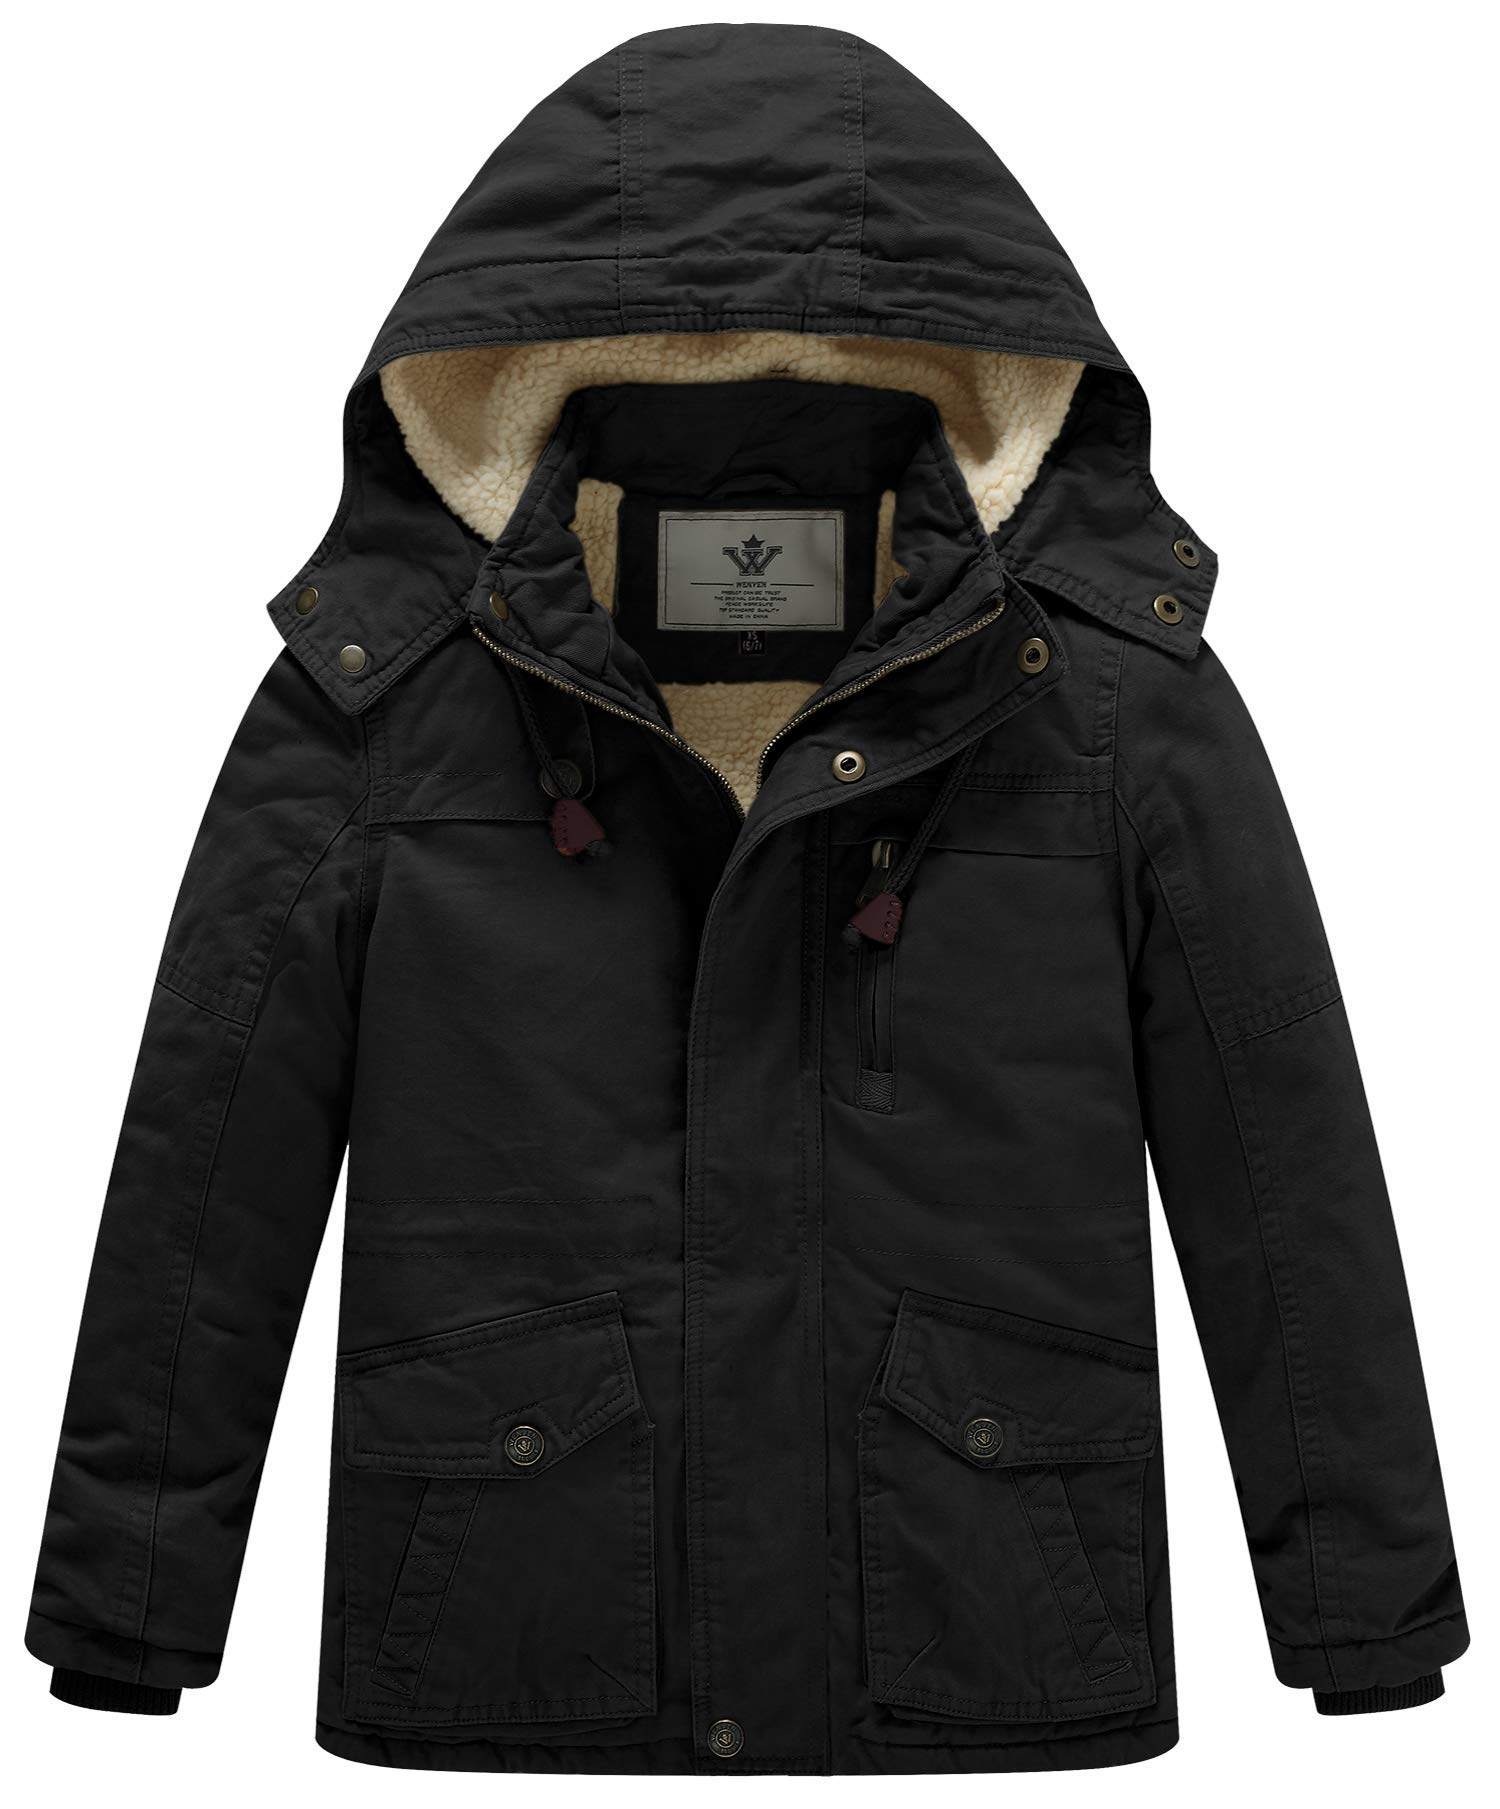 WenVen Boy's and Girl's Cotton Heavy Hooded Parka Coat(Black,X-Small-6-7)